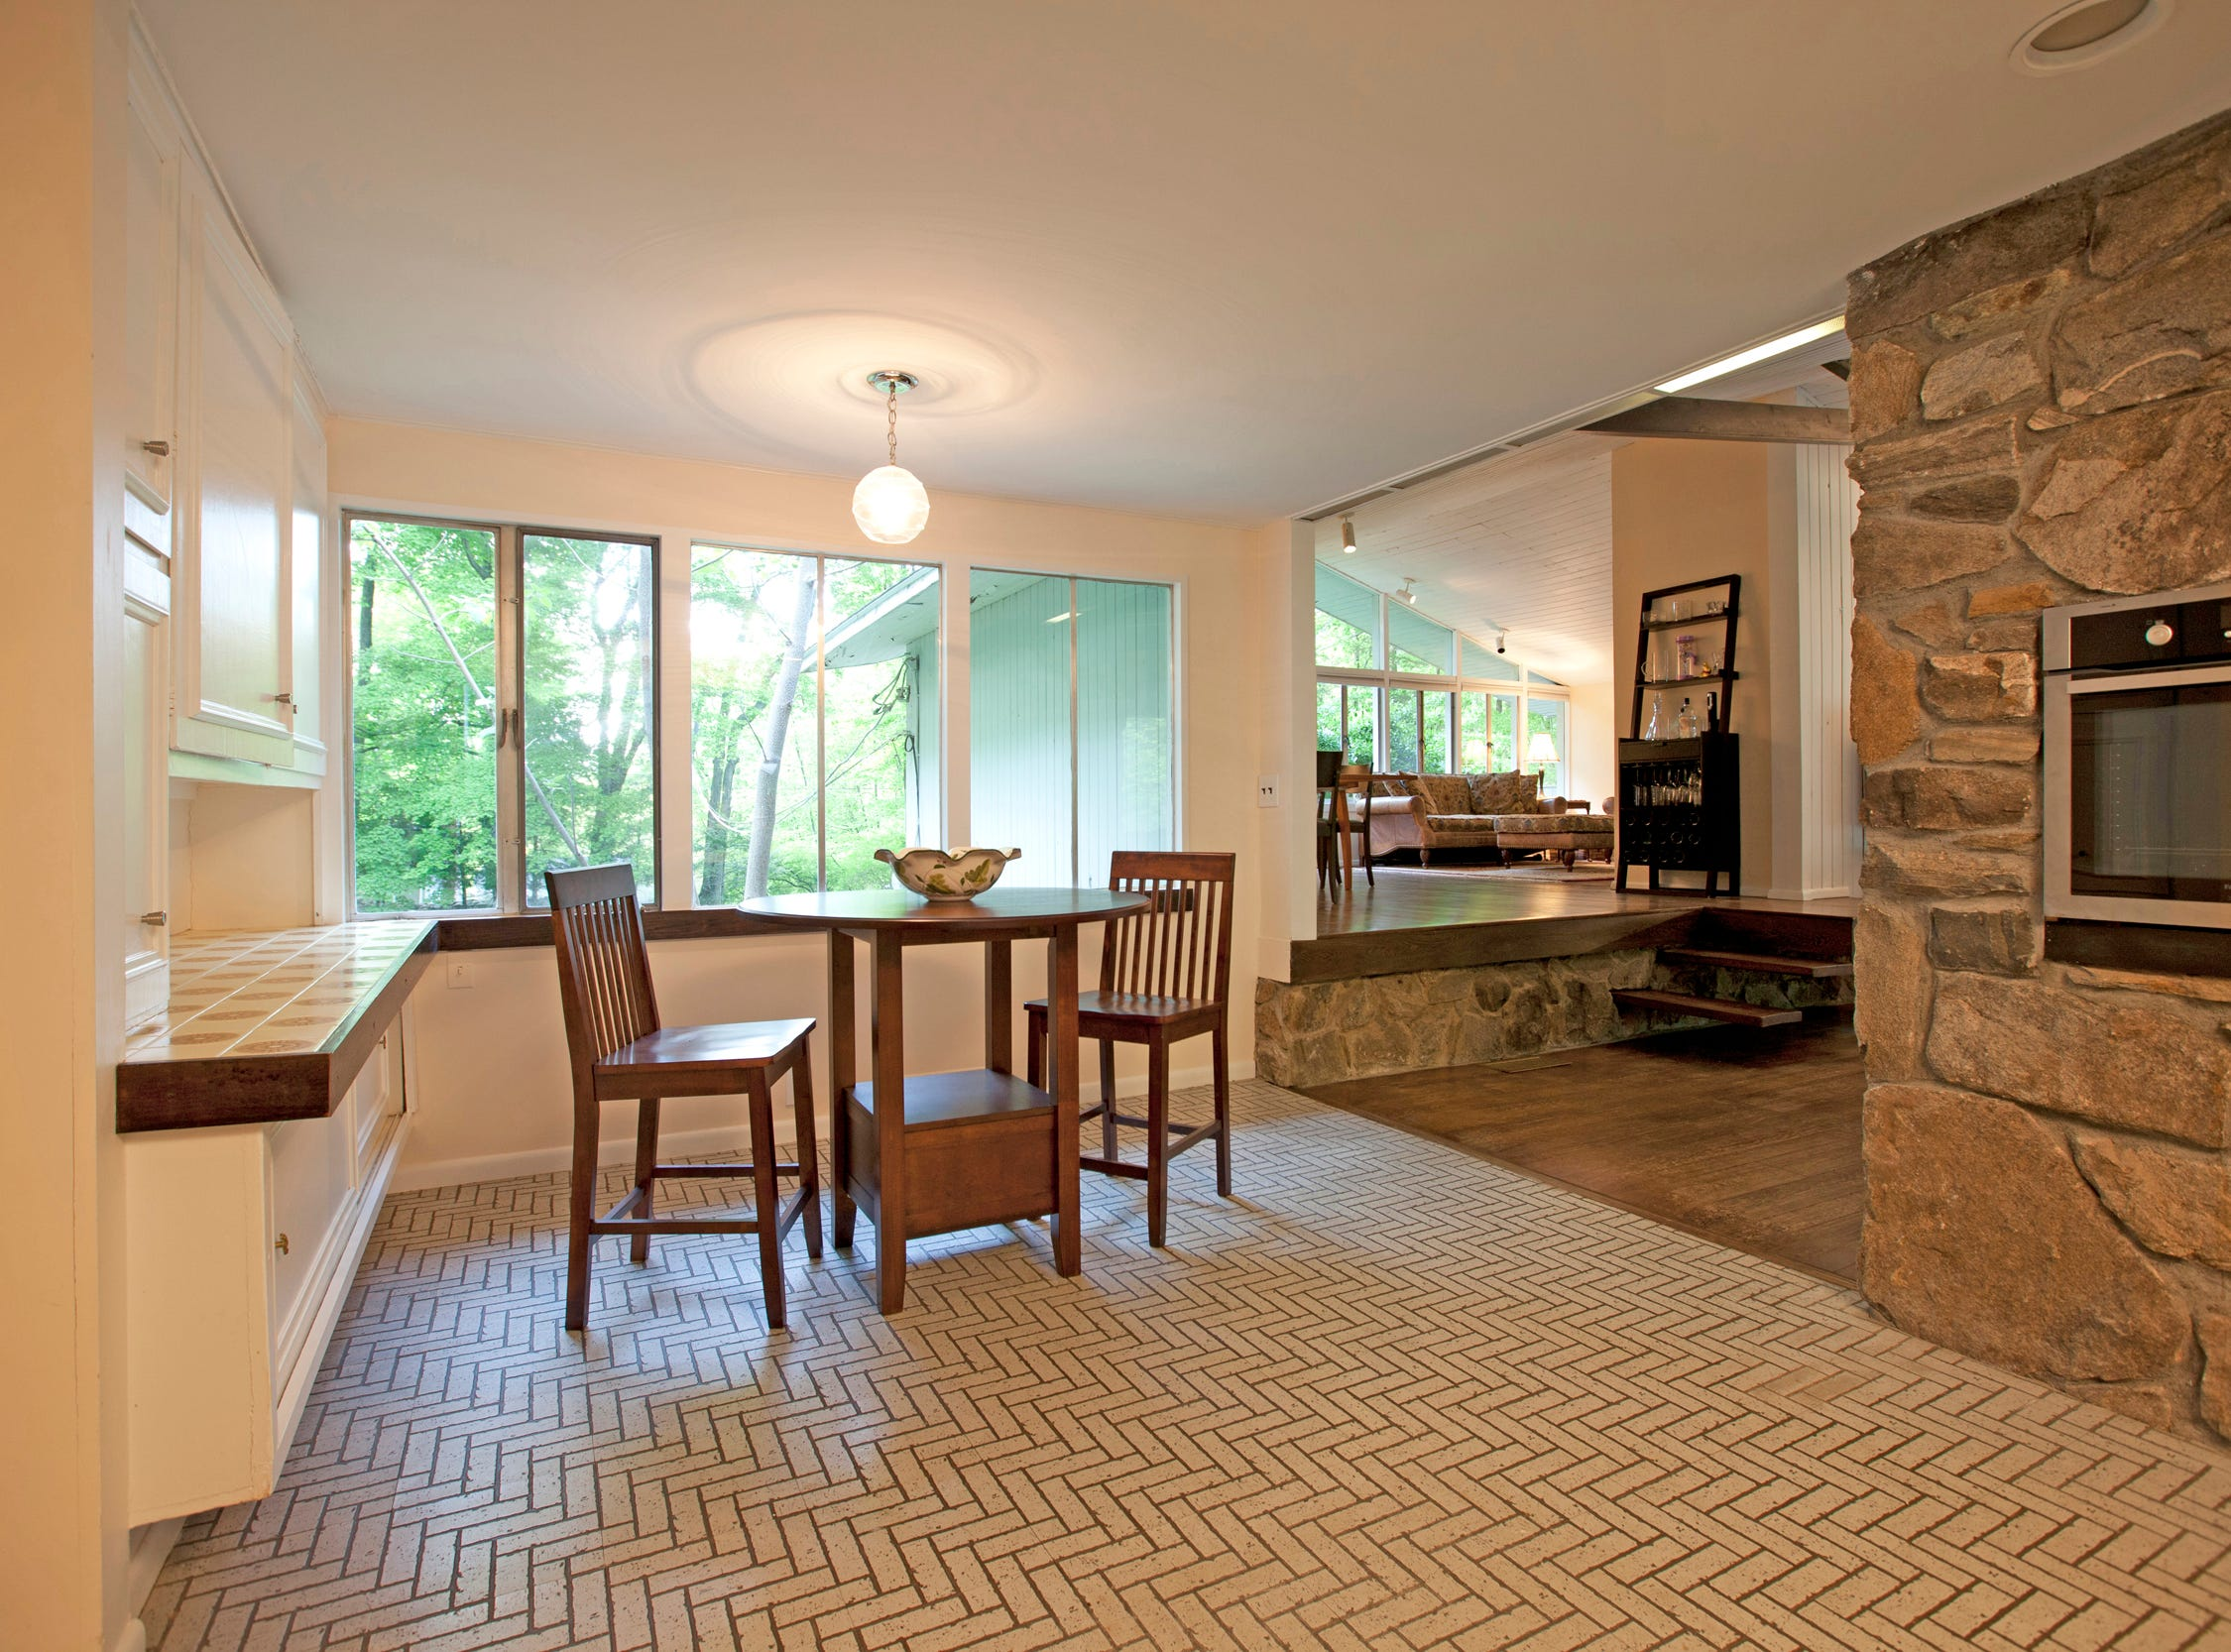 In the kitchen, a built-in stainless steel oven is located within the masonry rock wall.